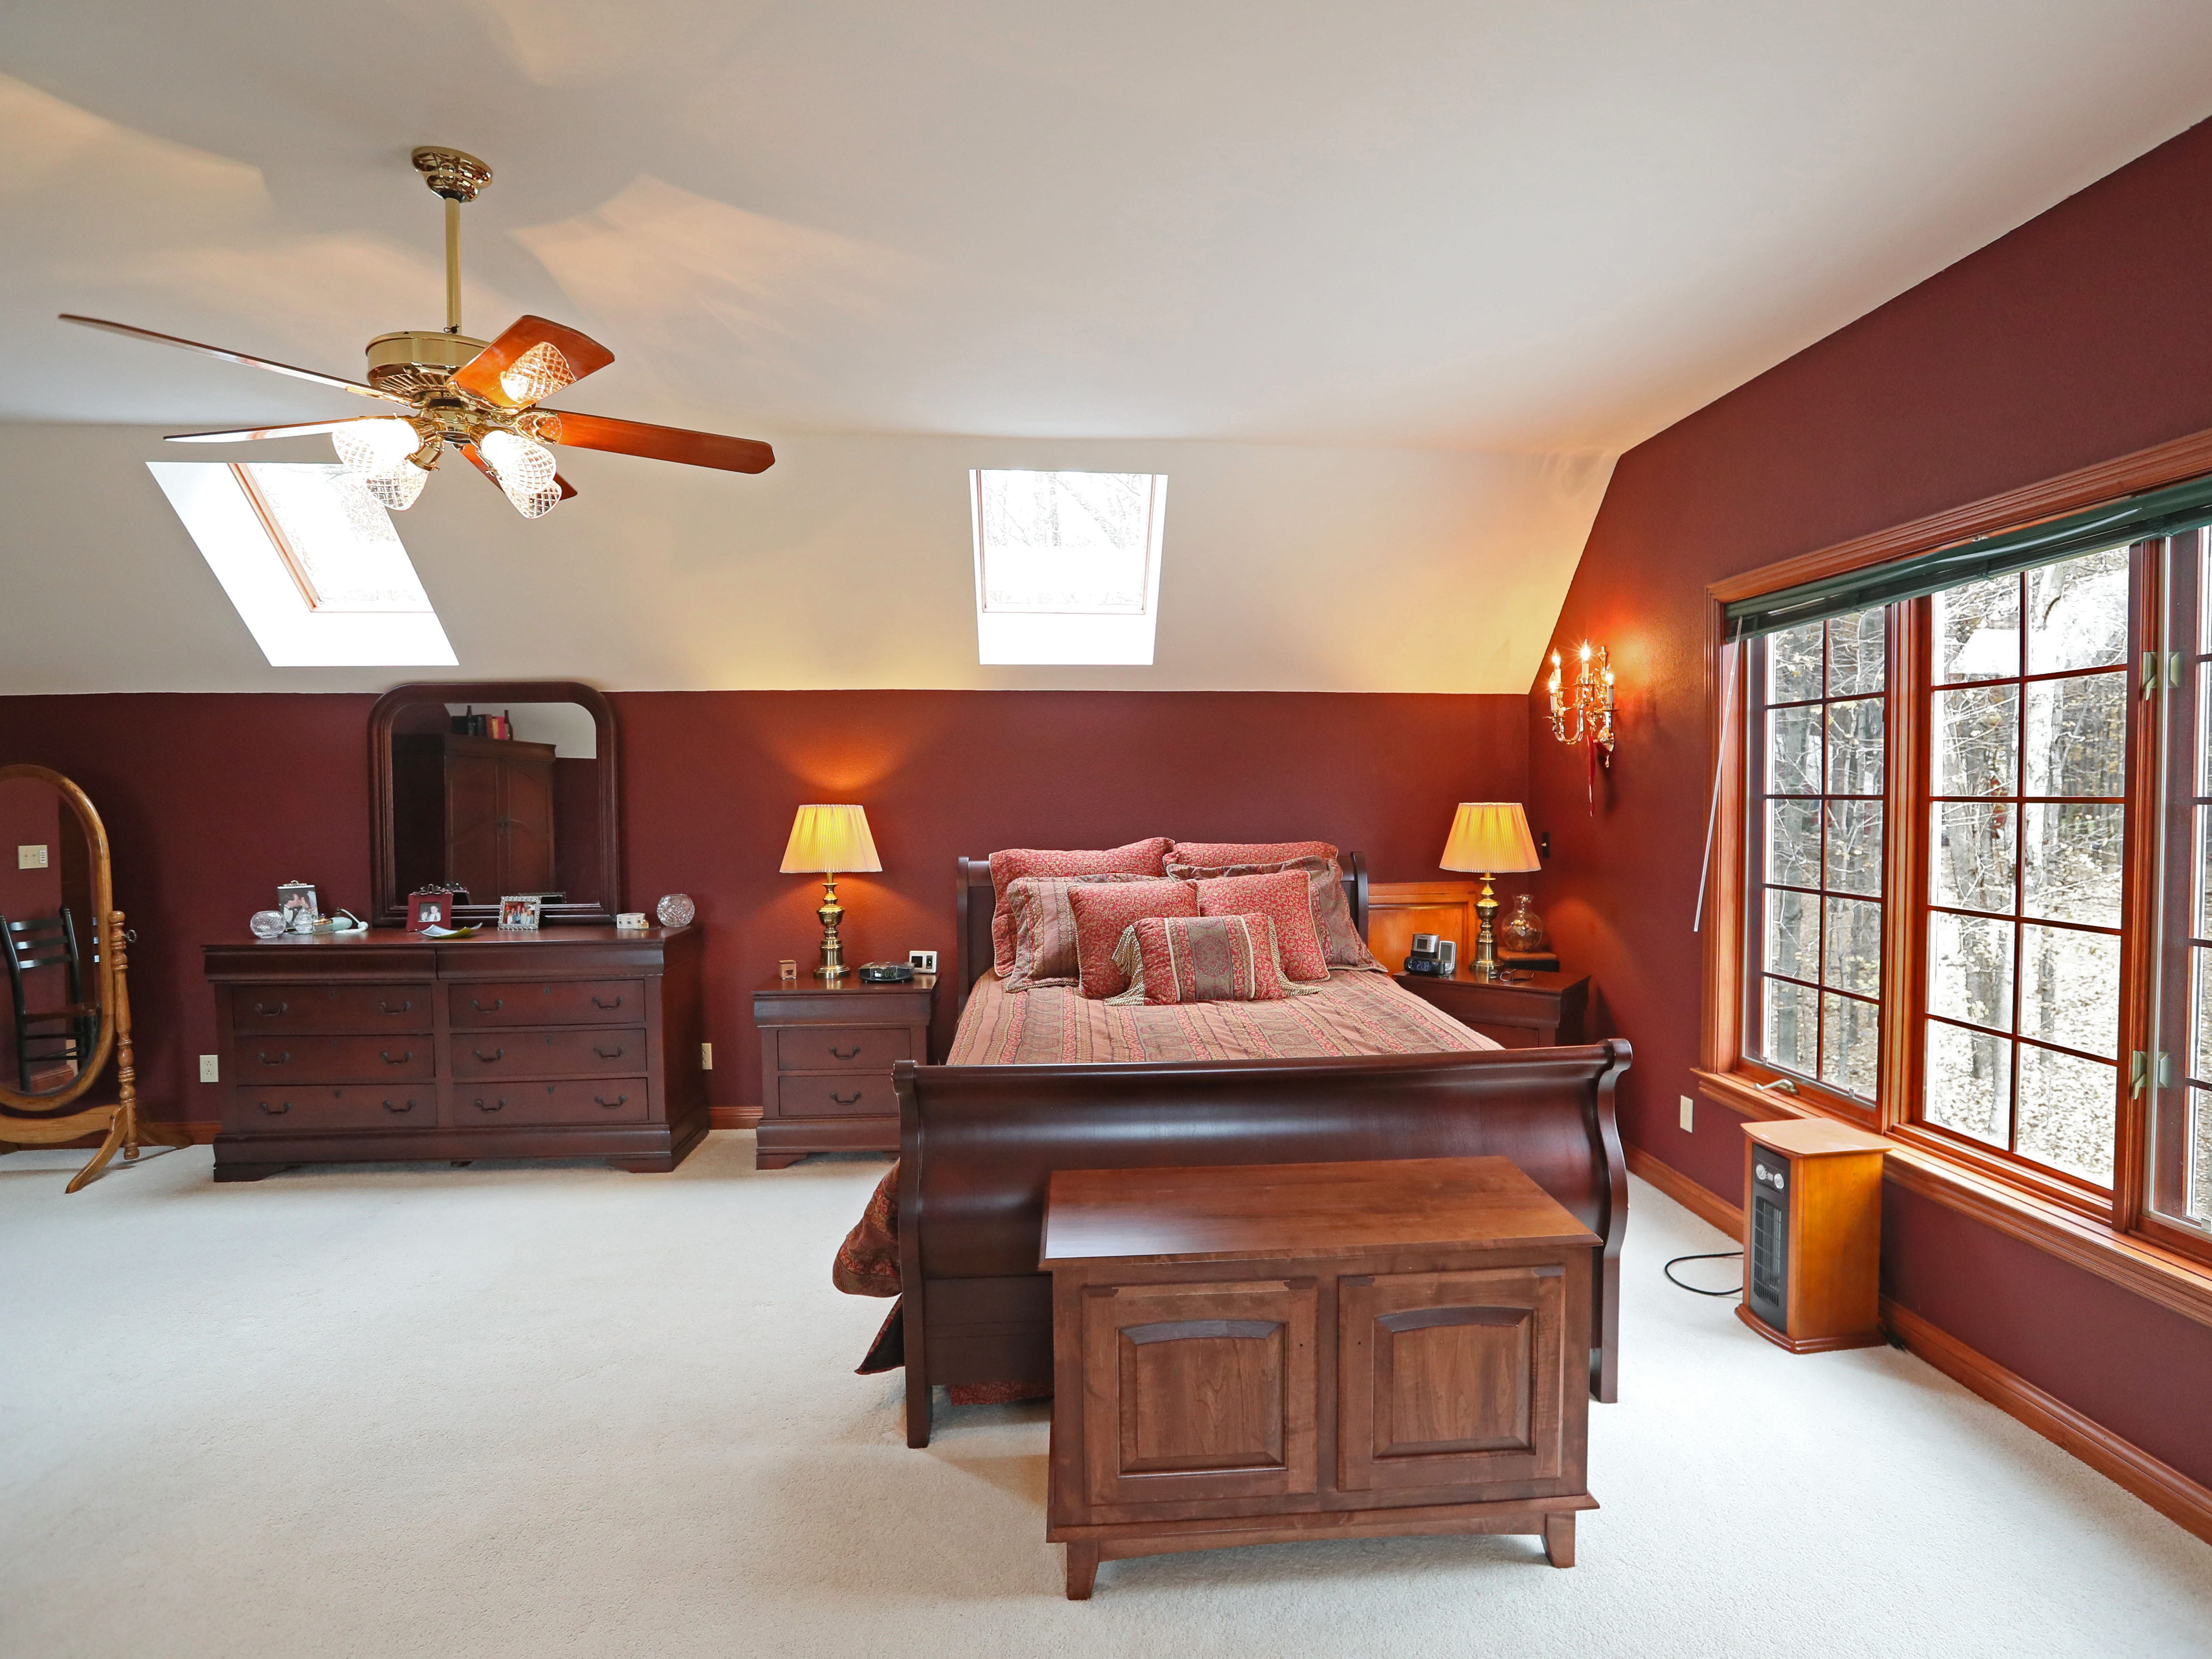 A number of rooms in the house, including the master bedroom, have neutral carpeting.